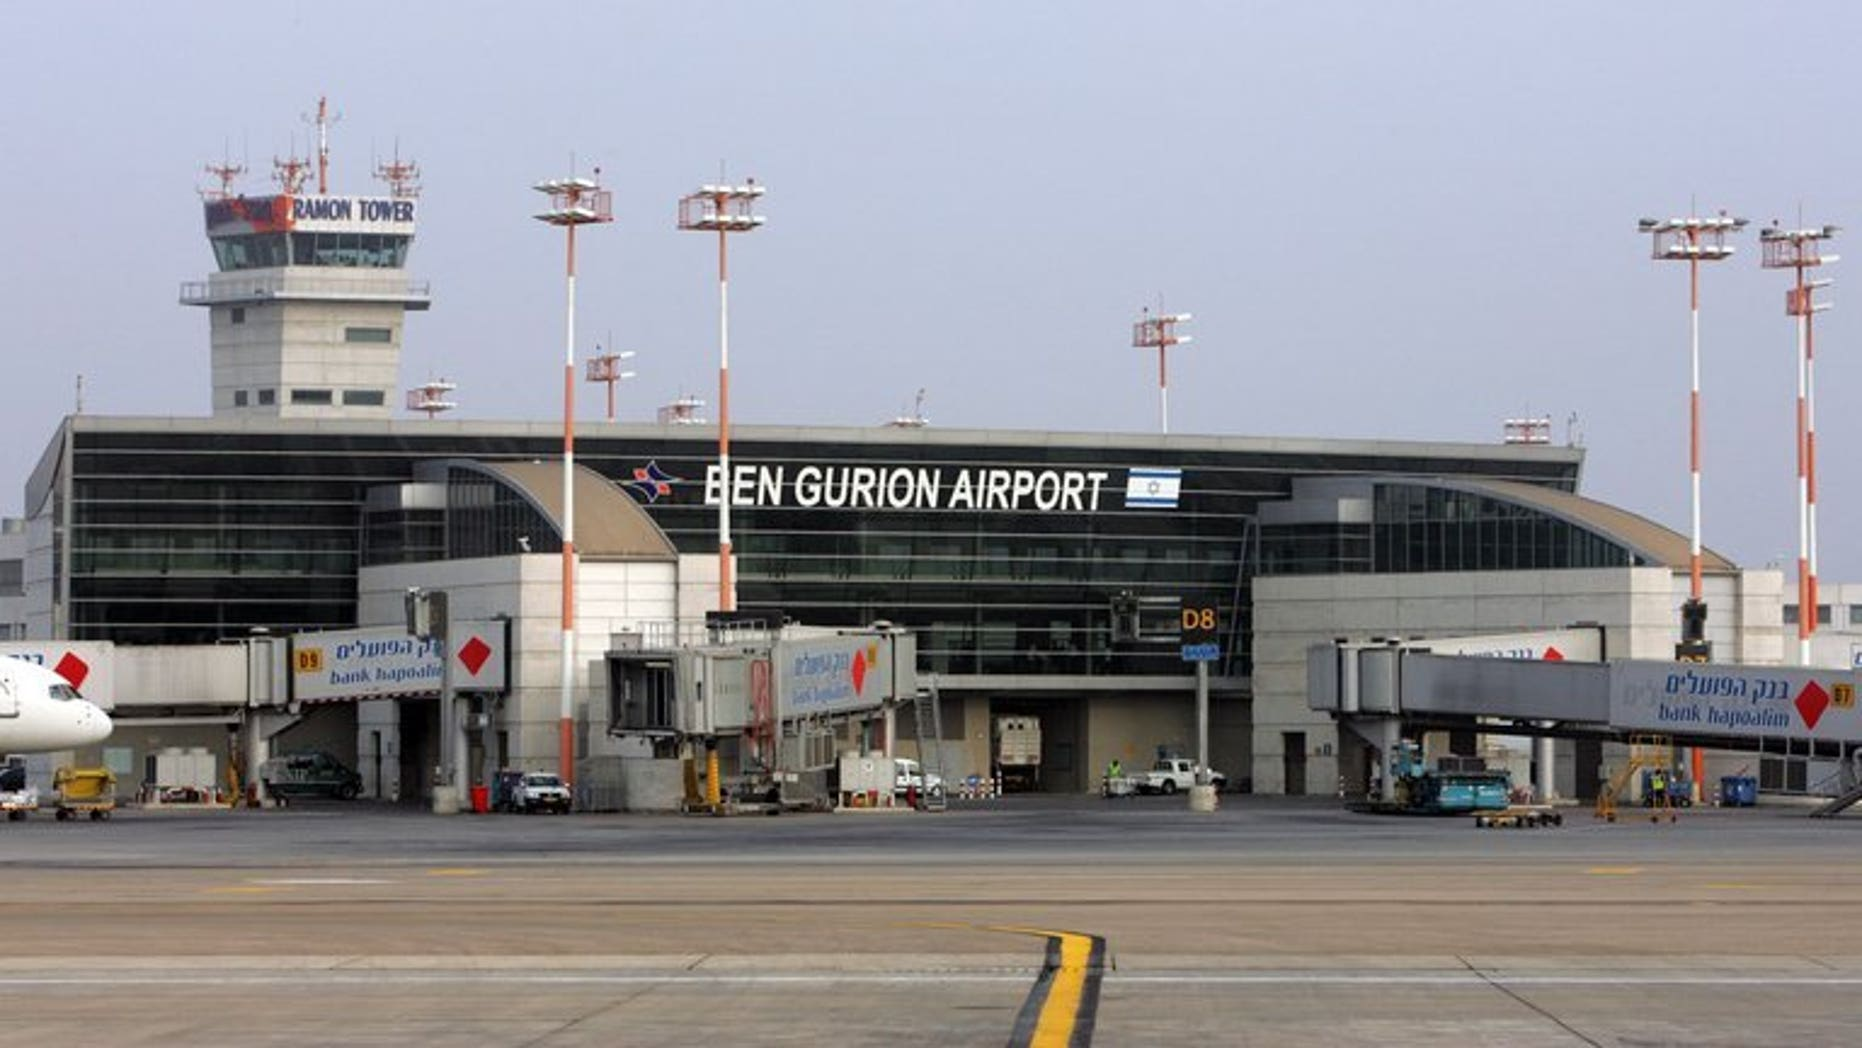 File photo shows Ben Gurion international airport on the outskirts of Tel Aviv, July 25 2007. A Greek charter plane made an emergency landing at Tel Aviv's Ben Gurion airport on Thursday after the pilot had sent out a distress signal, an airport official told AFP.